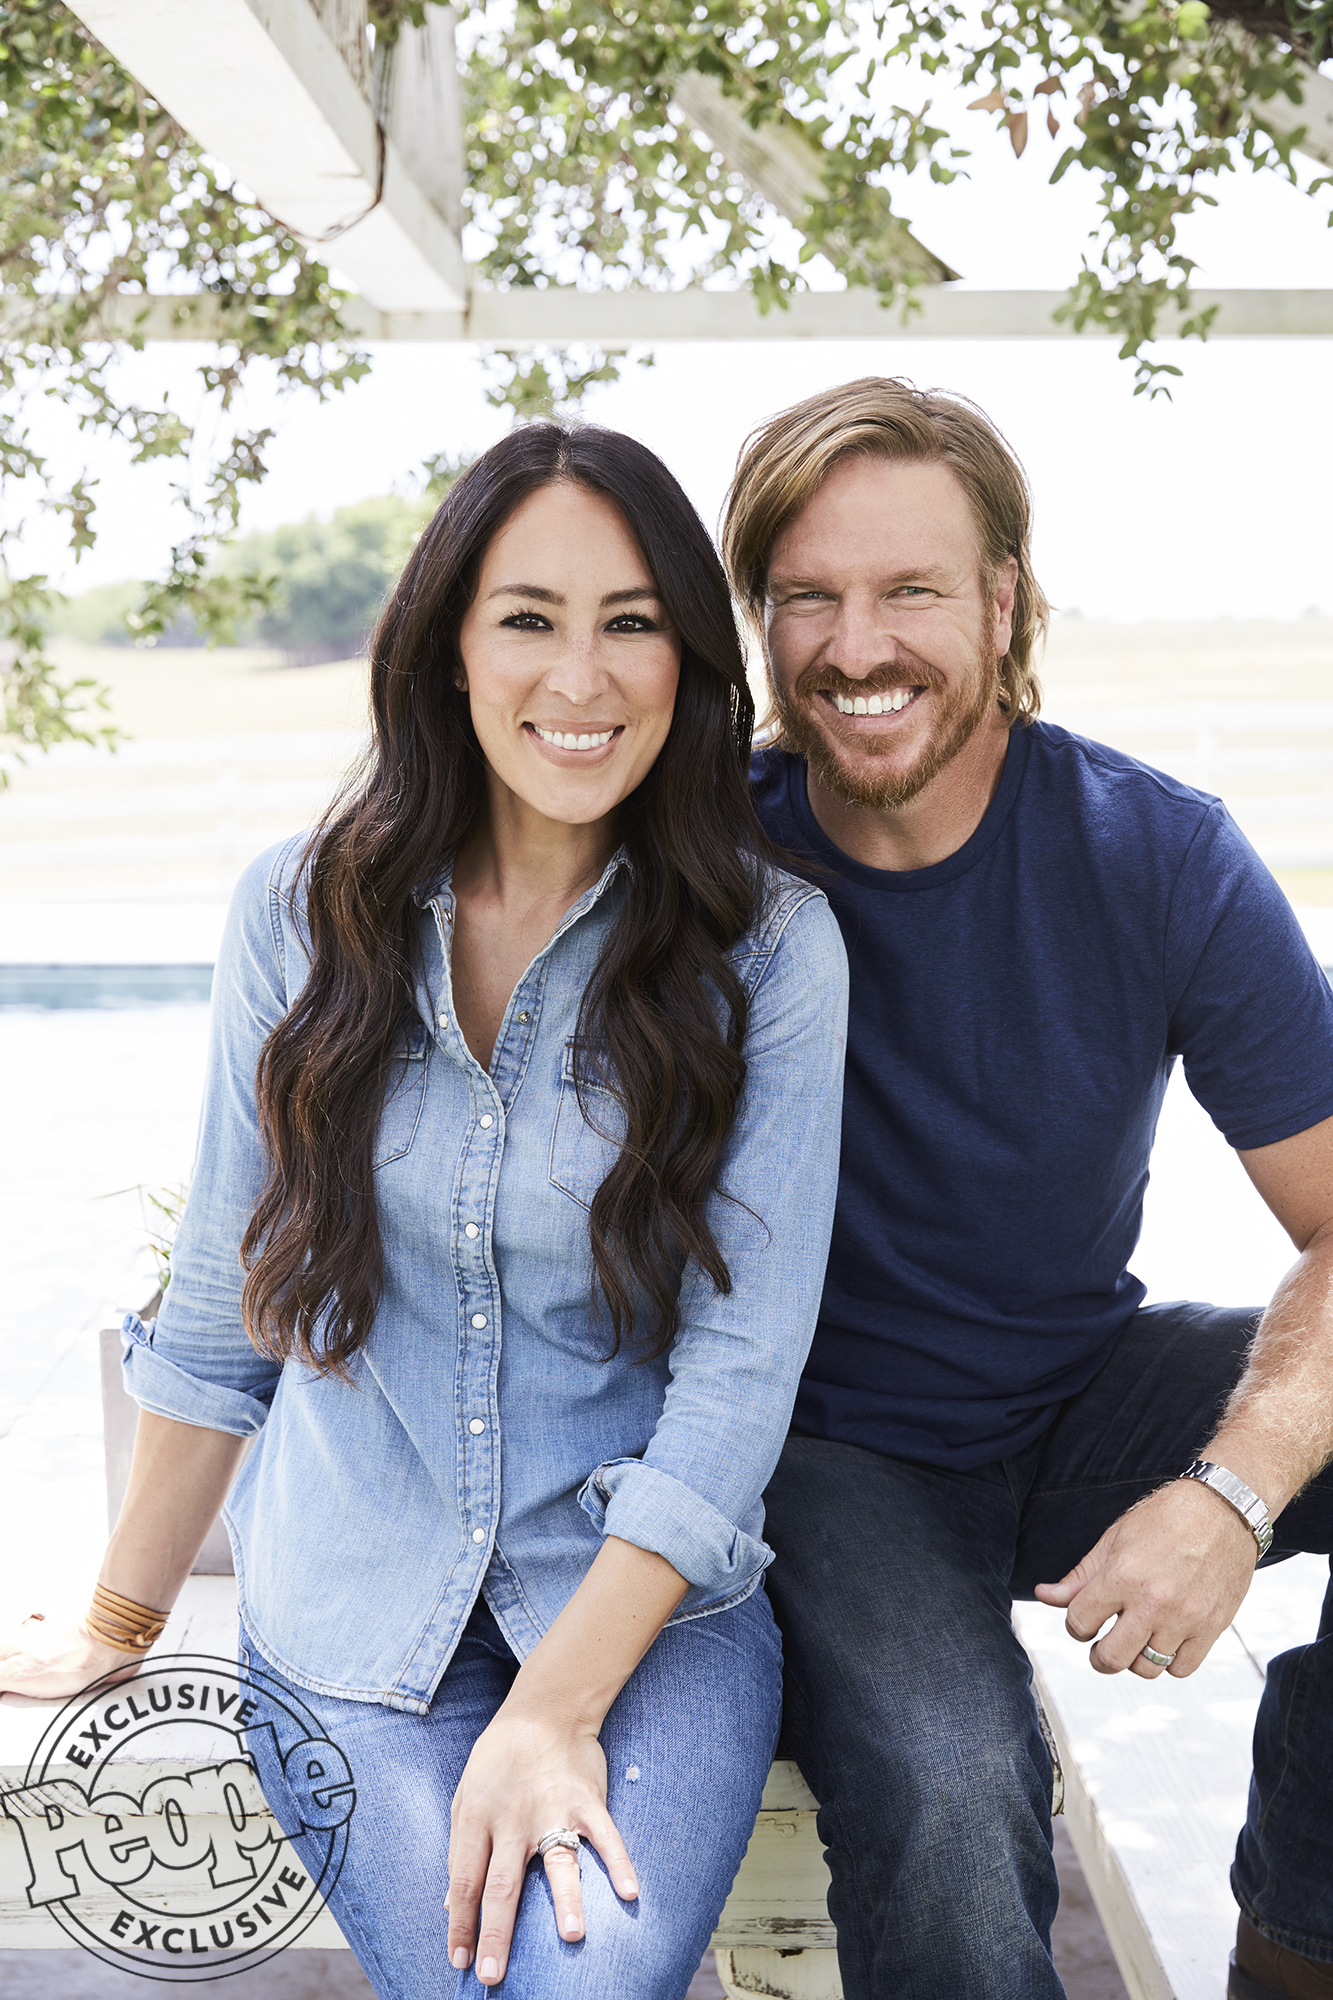 It's Official! Chip and Joanna Gaines Will End Fixer Upper After Upcoming 5th Season